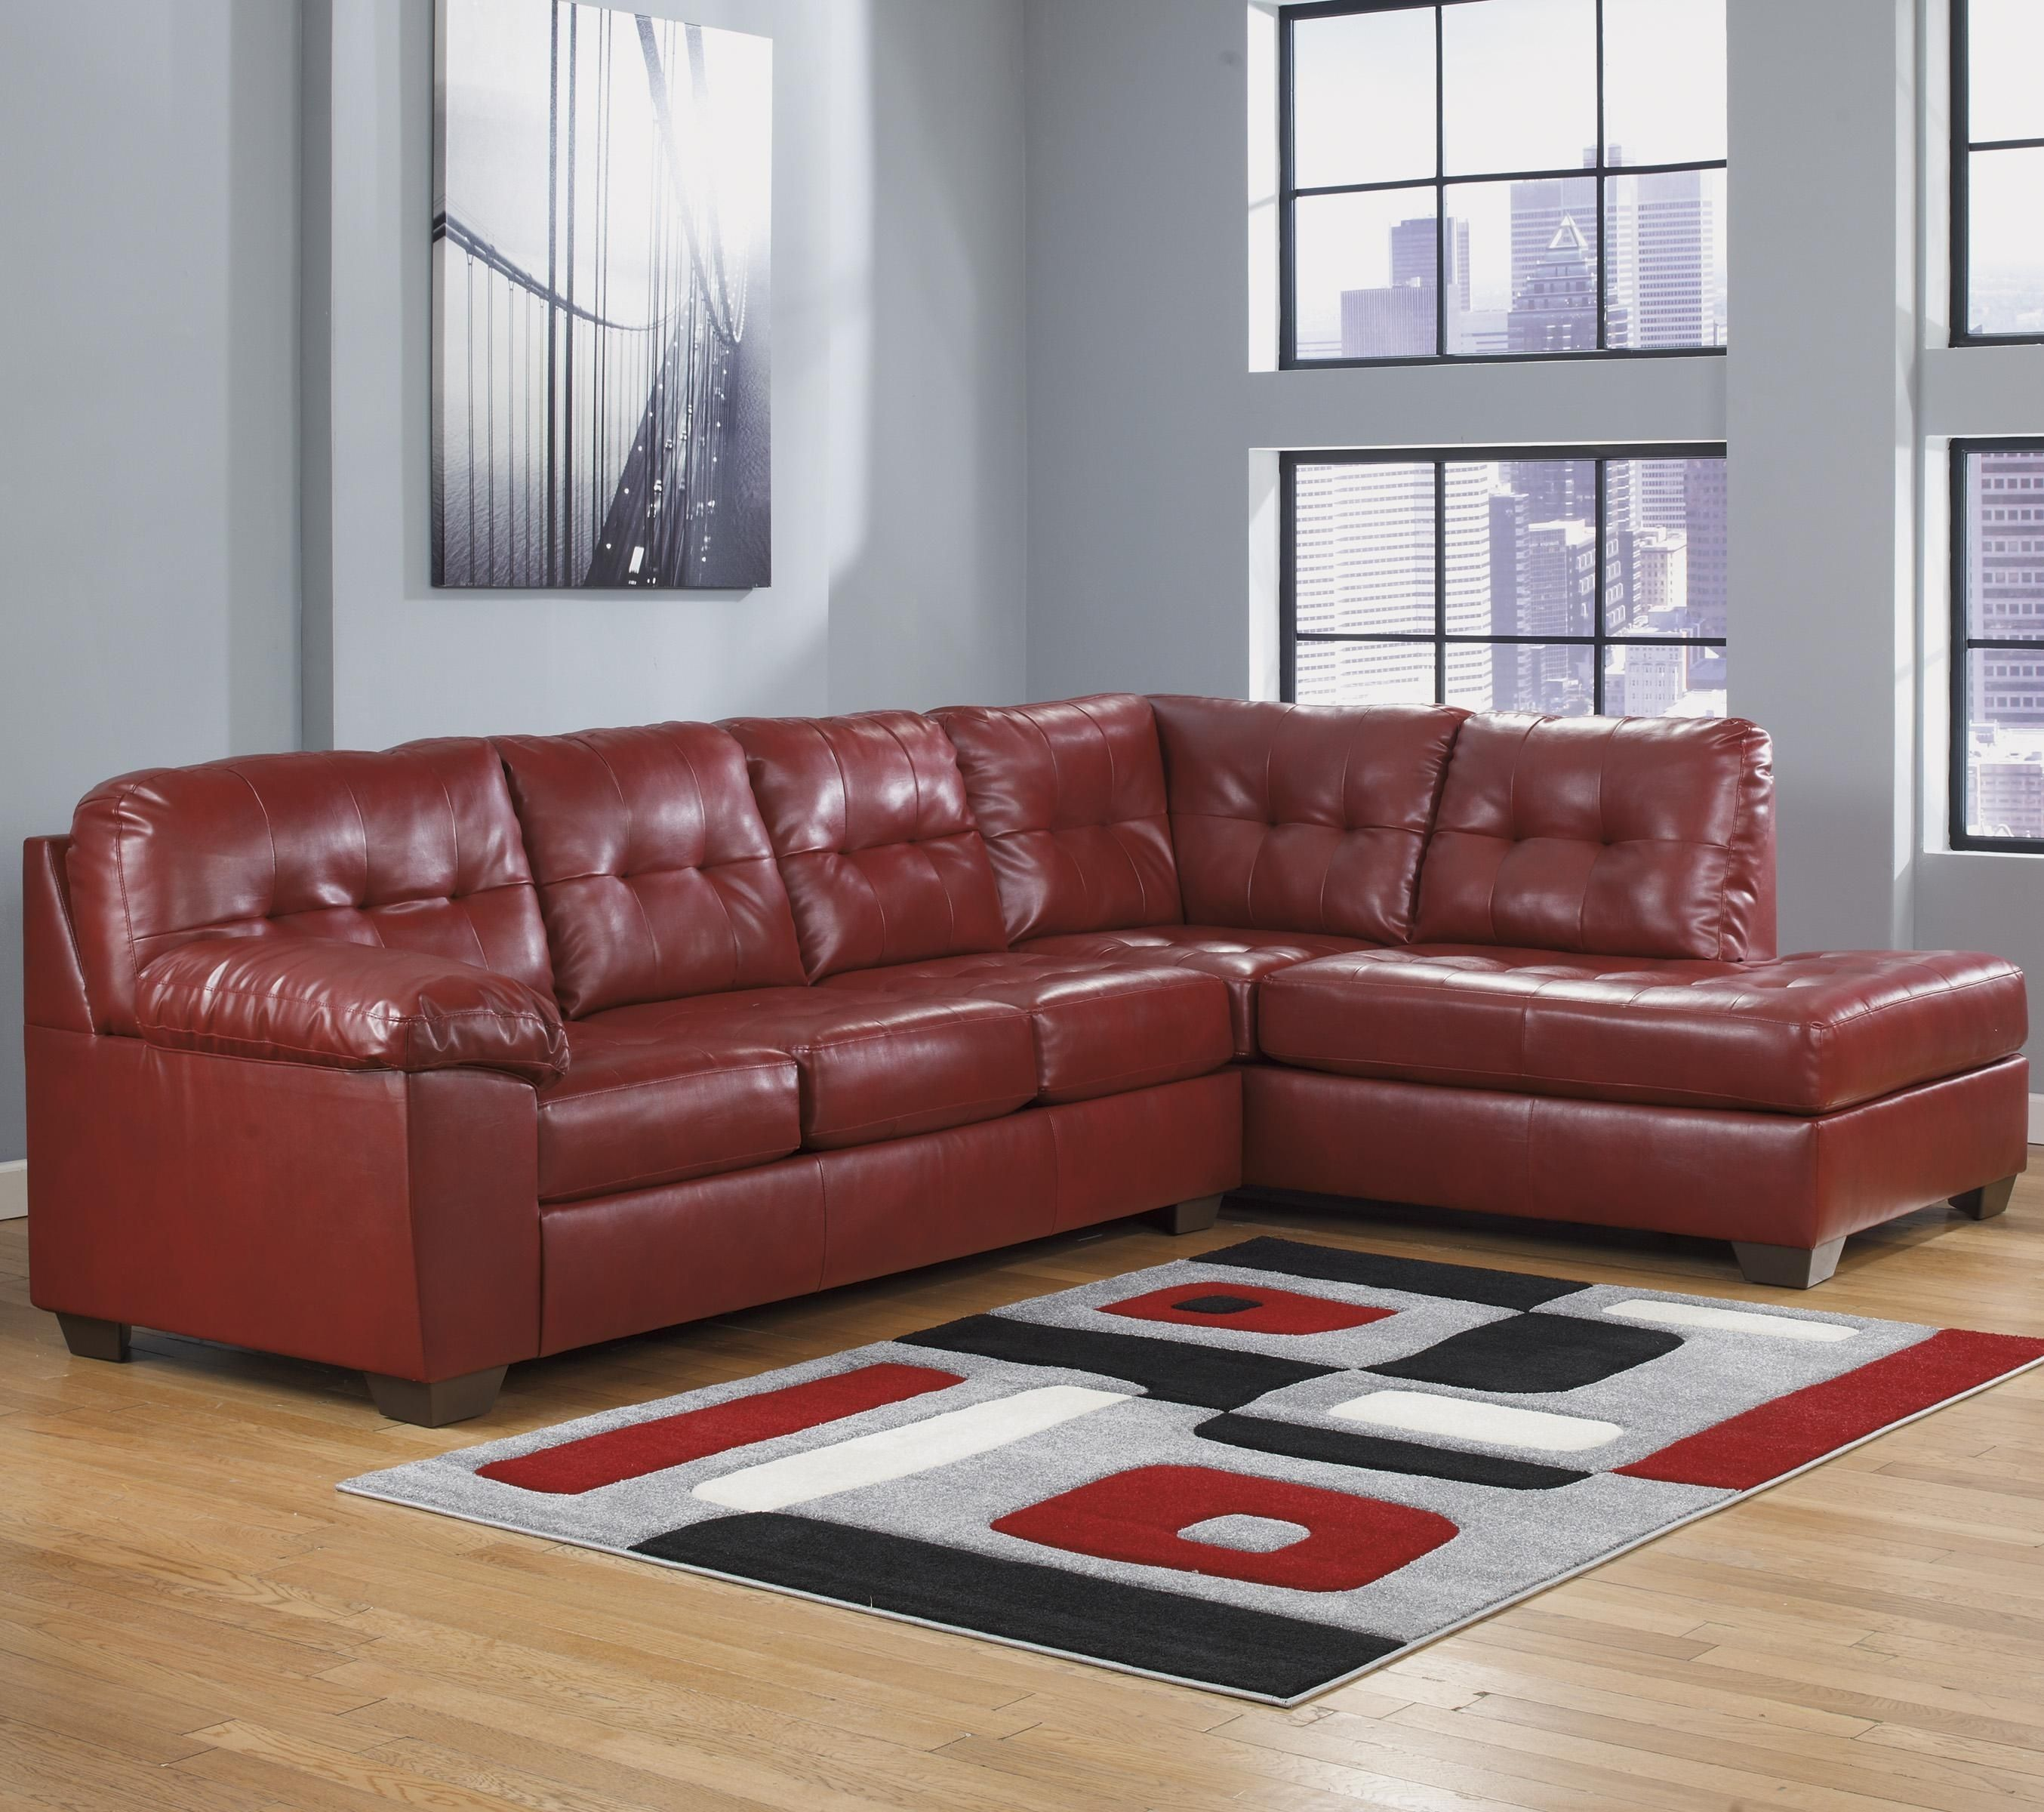 Scs Leather Sofas And Chairs Ligne Roset Sofa Smala Preis Red Bed Brokeasshome